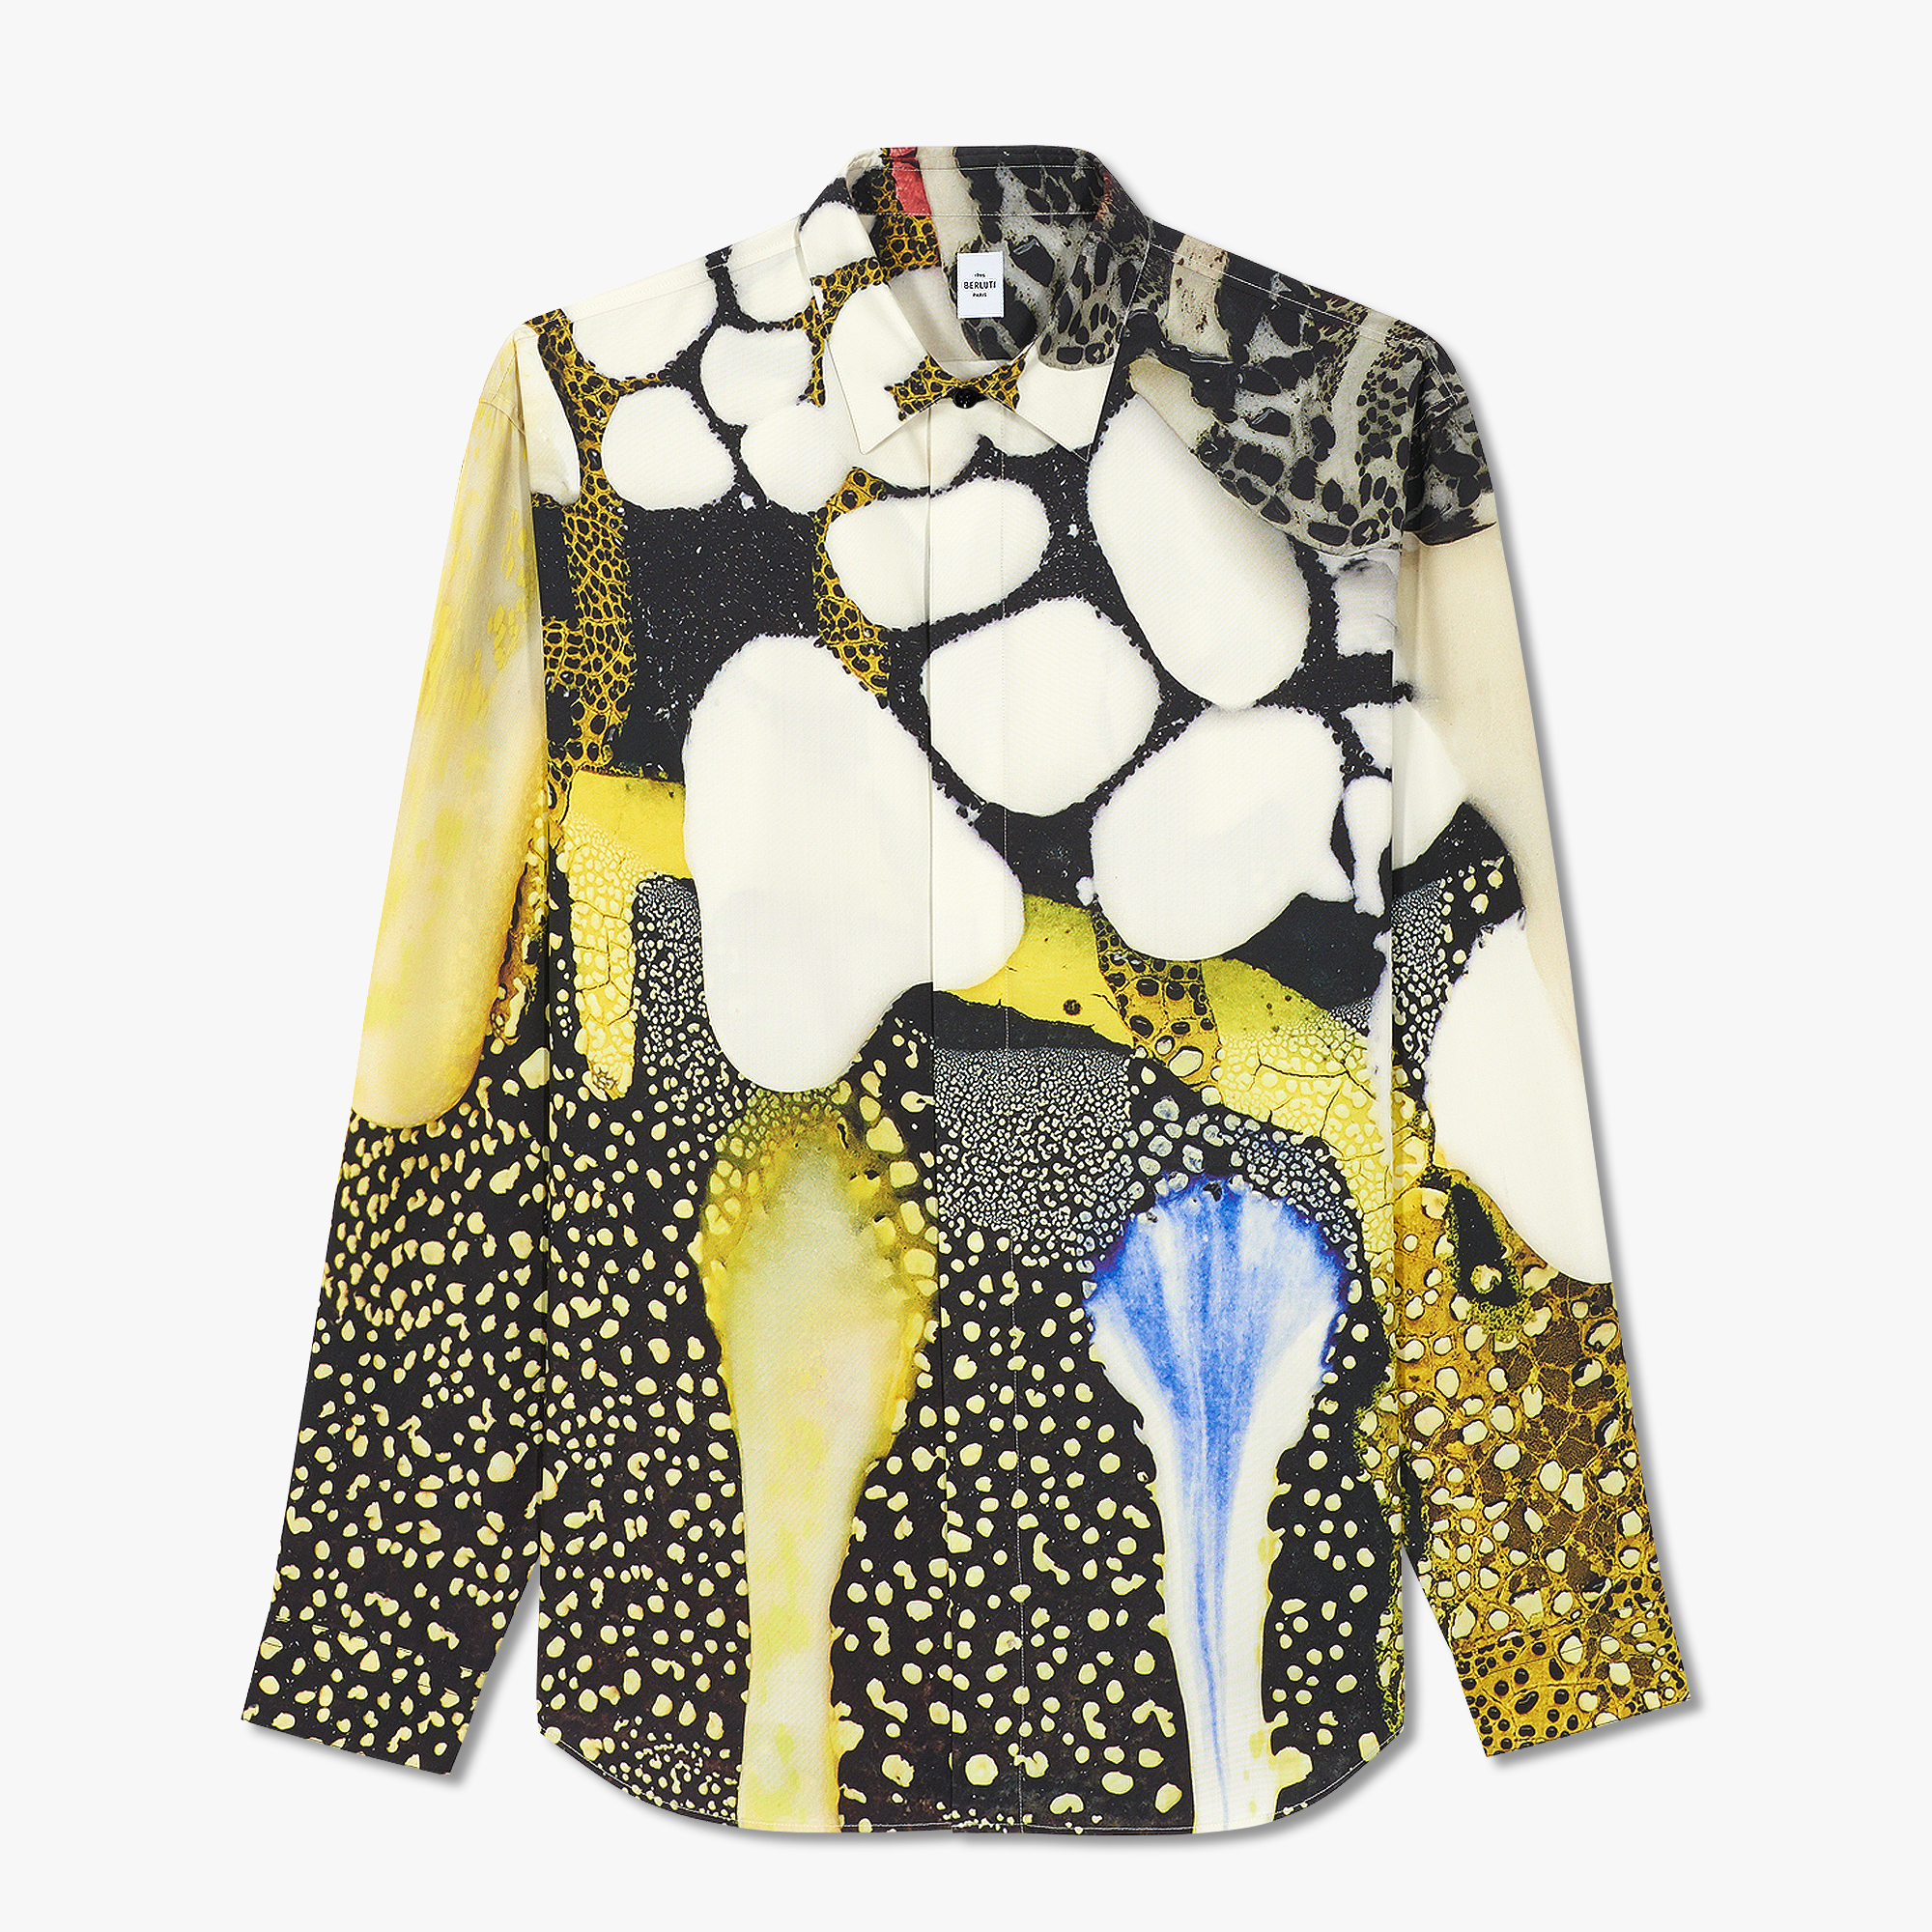 Brian Rochefort Printed Silk Shirt, BR 1 YELLOW, hi-res